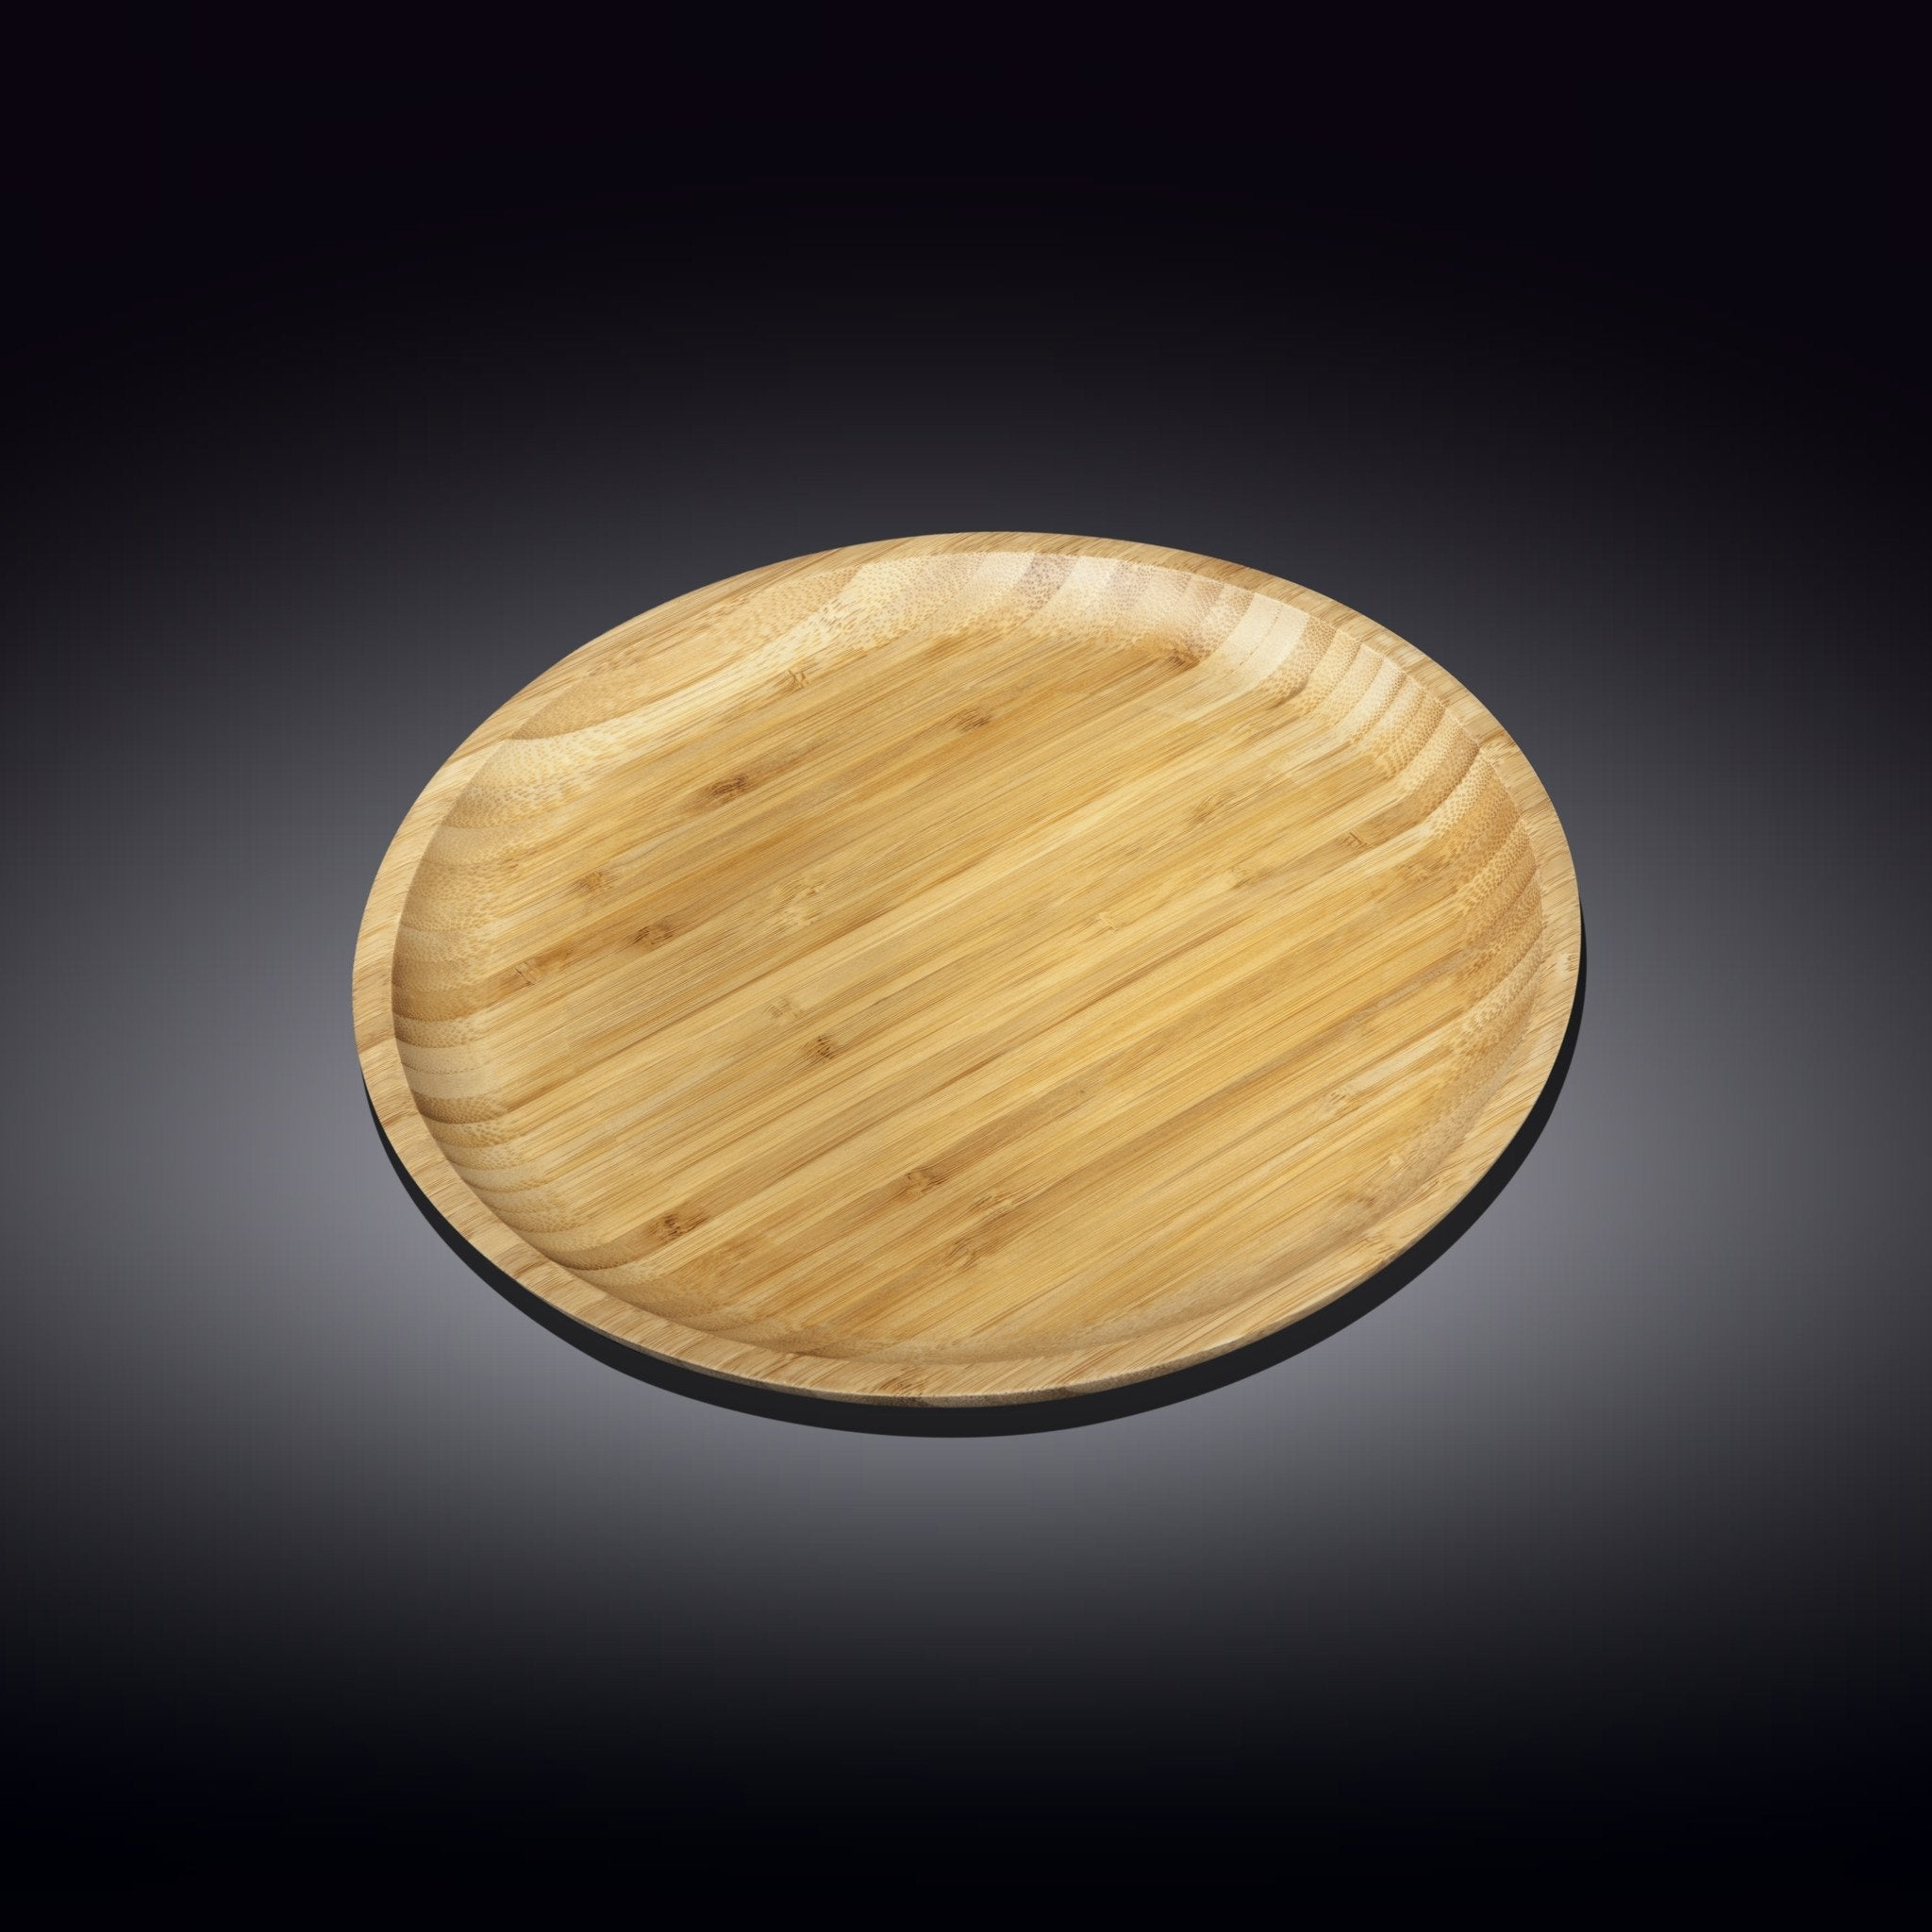 NATURAL BAMBOO PLATE 9"